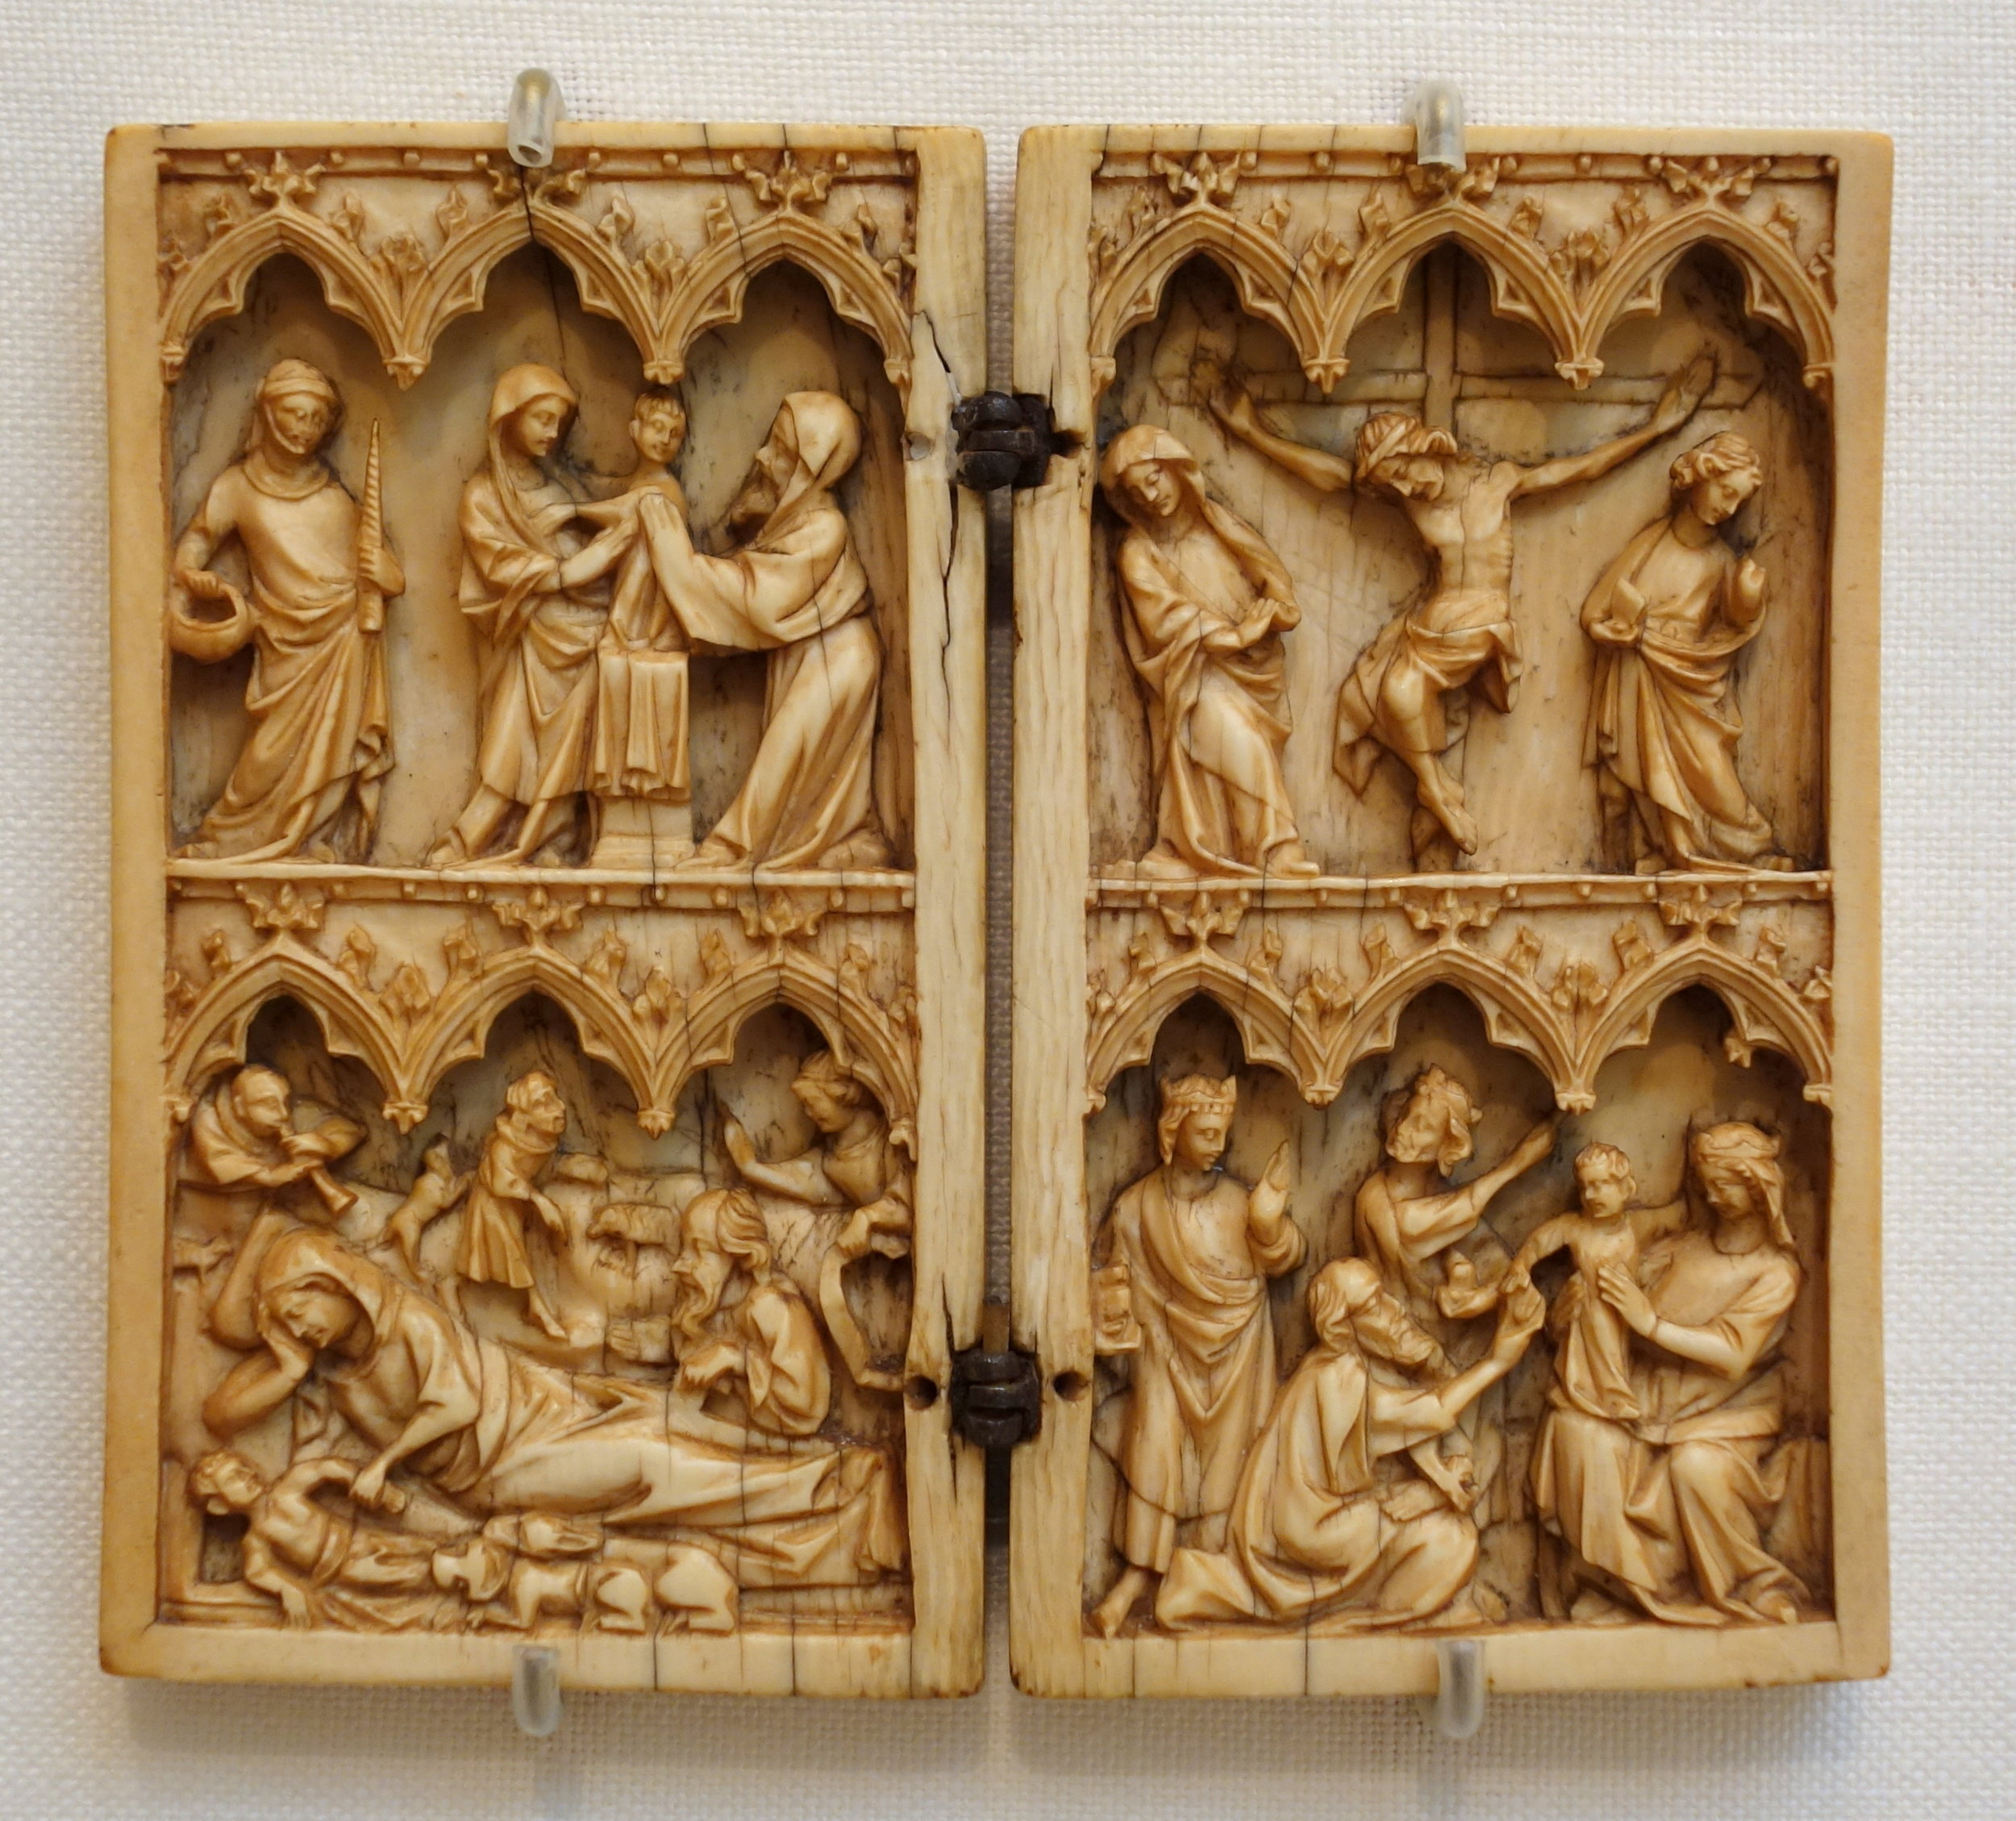 Diptych Depicting the Life of Christ in Ivory (14th century)